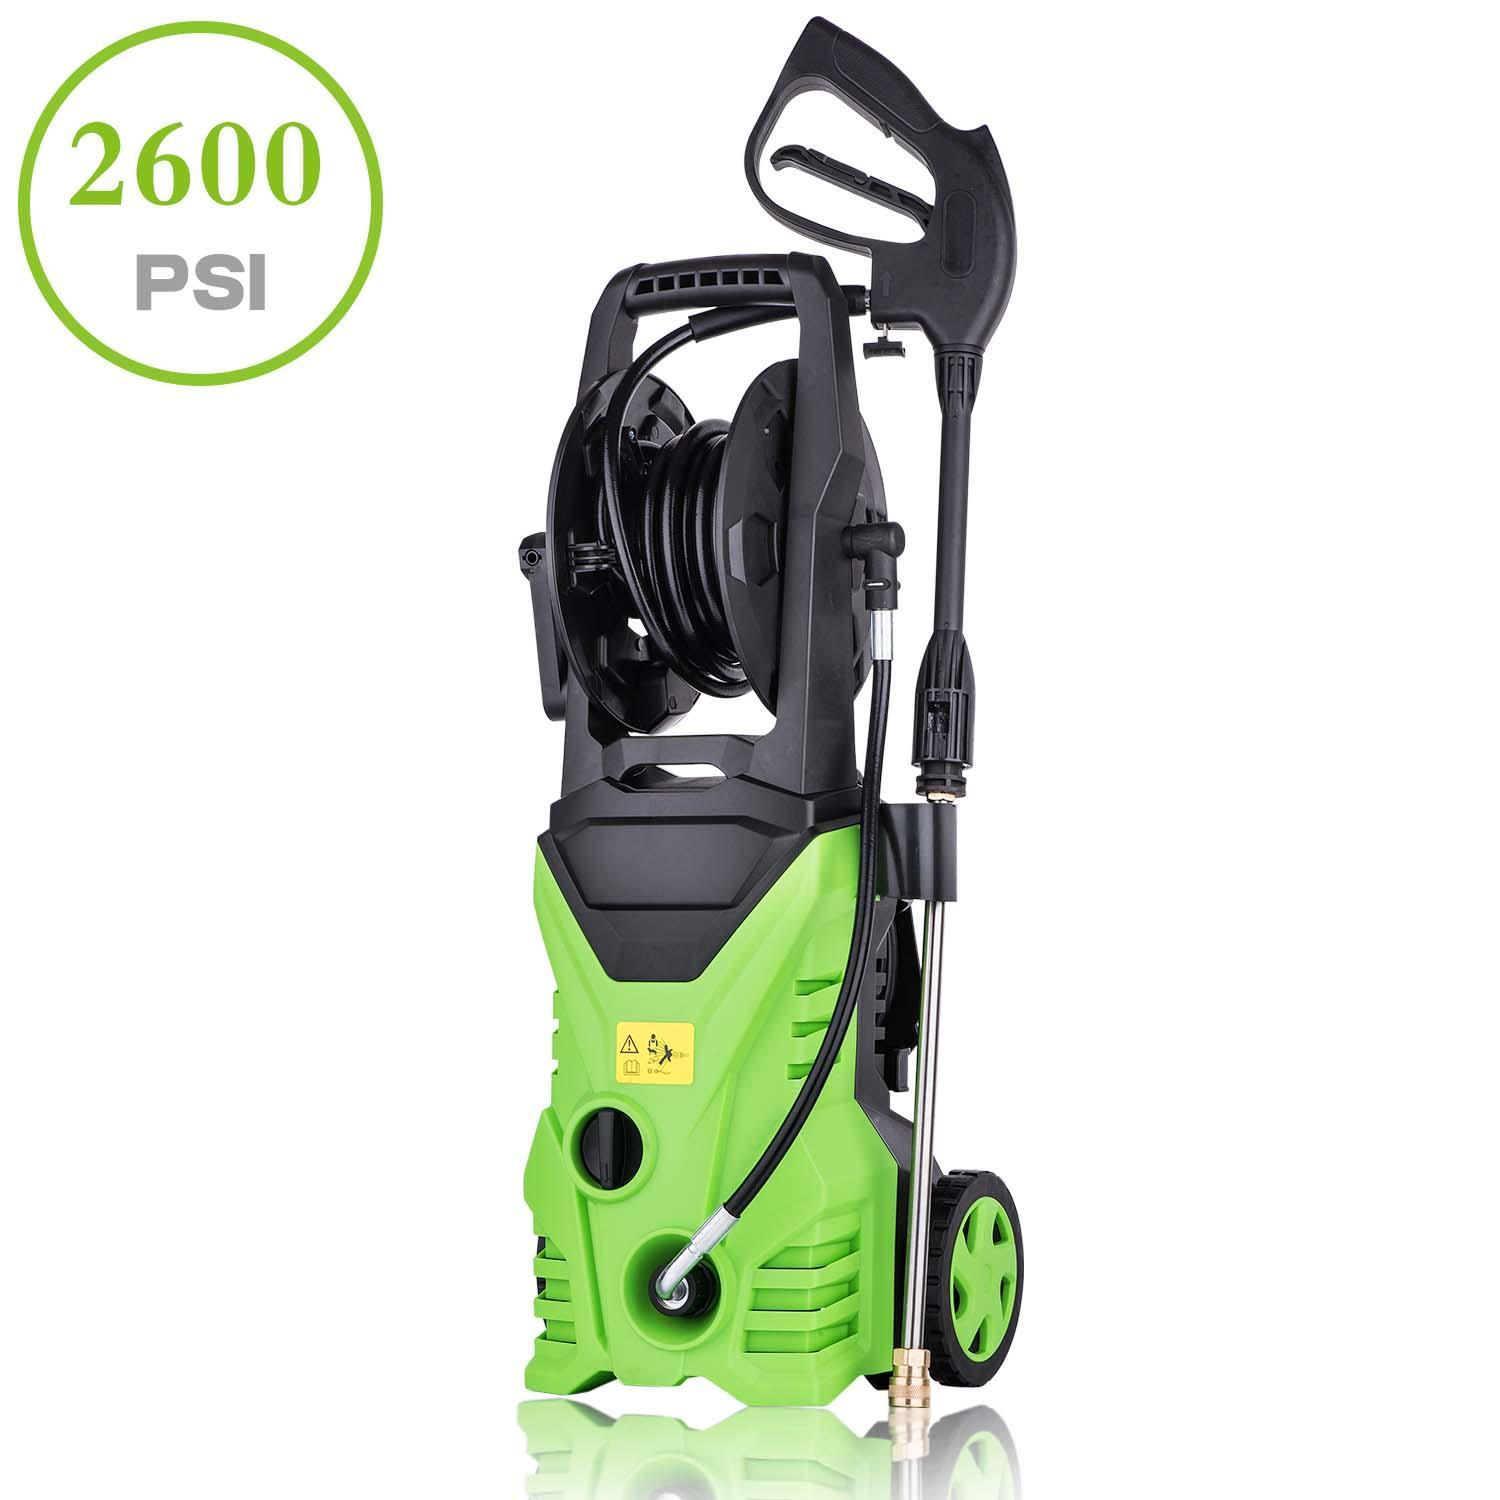 Homdox 3000 Psi Professional Electric Pressure Washer 1 76gpm 1800w Rolling Wheels High Pressure Washer Cleaner Machine With Power Hose Nozzle Gun And 5 Quick Connect Spray Tips Hitc Walmart Com Walmart Com